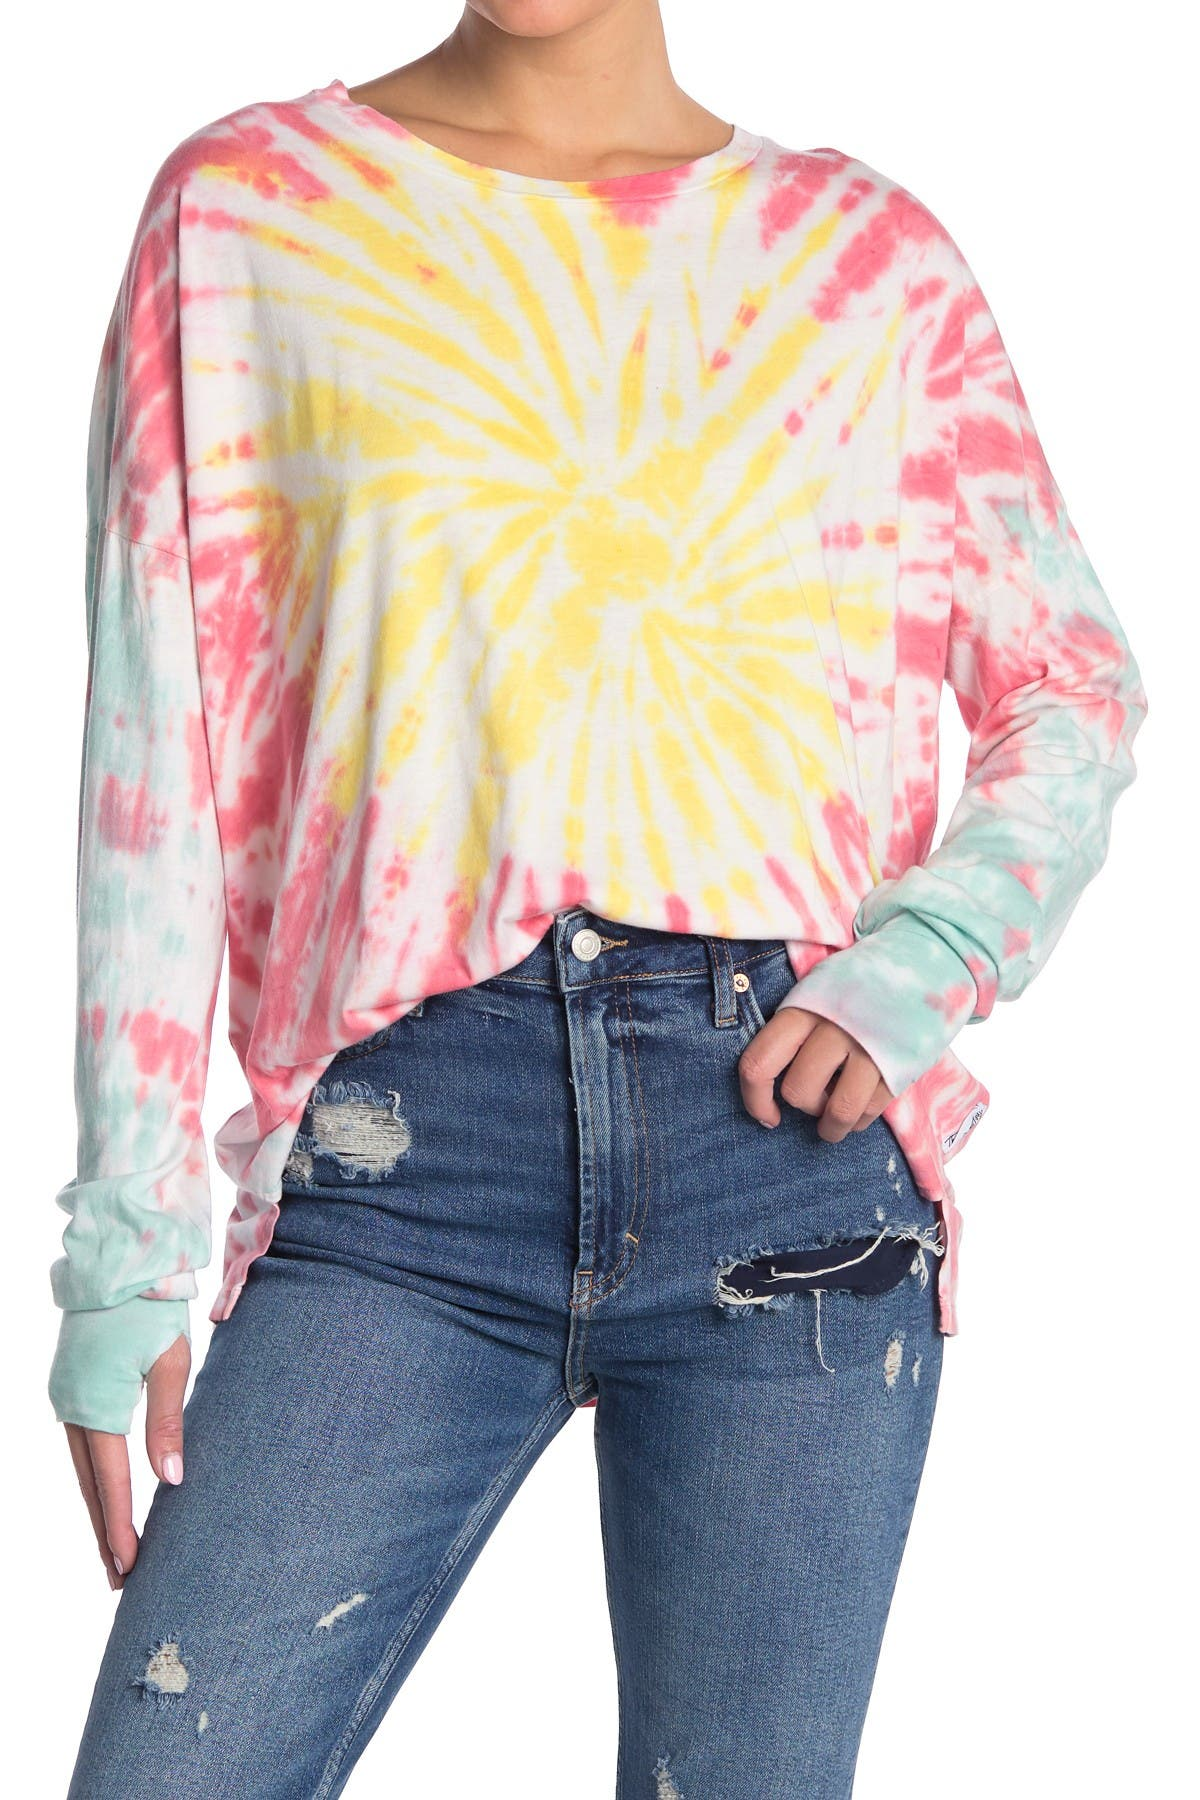 Image of The Laundry Room Lovely Tie Dye Print Sleep Shirt